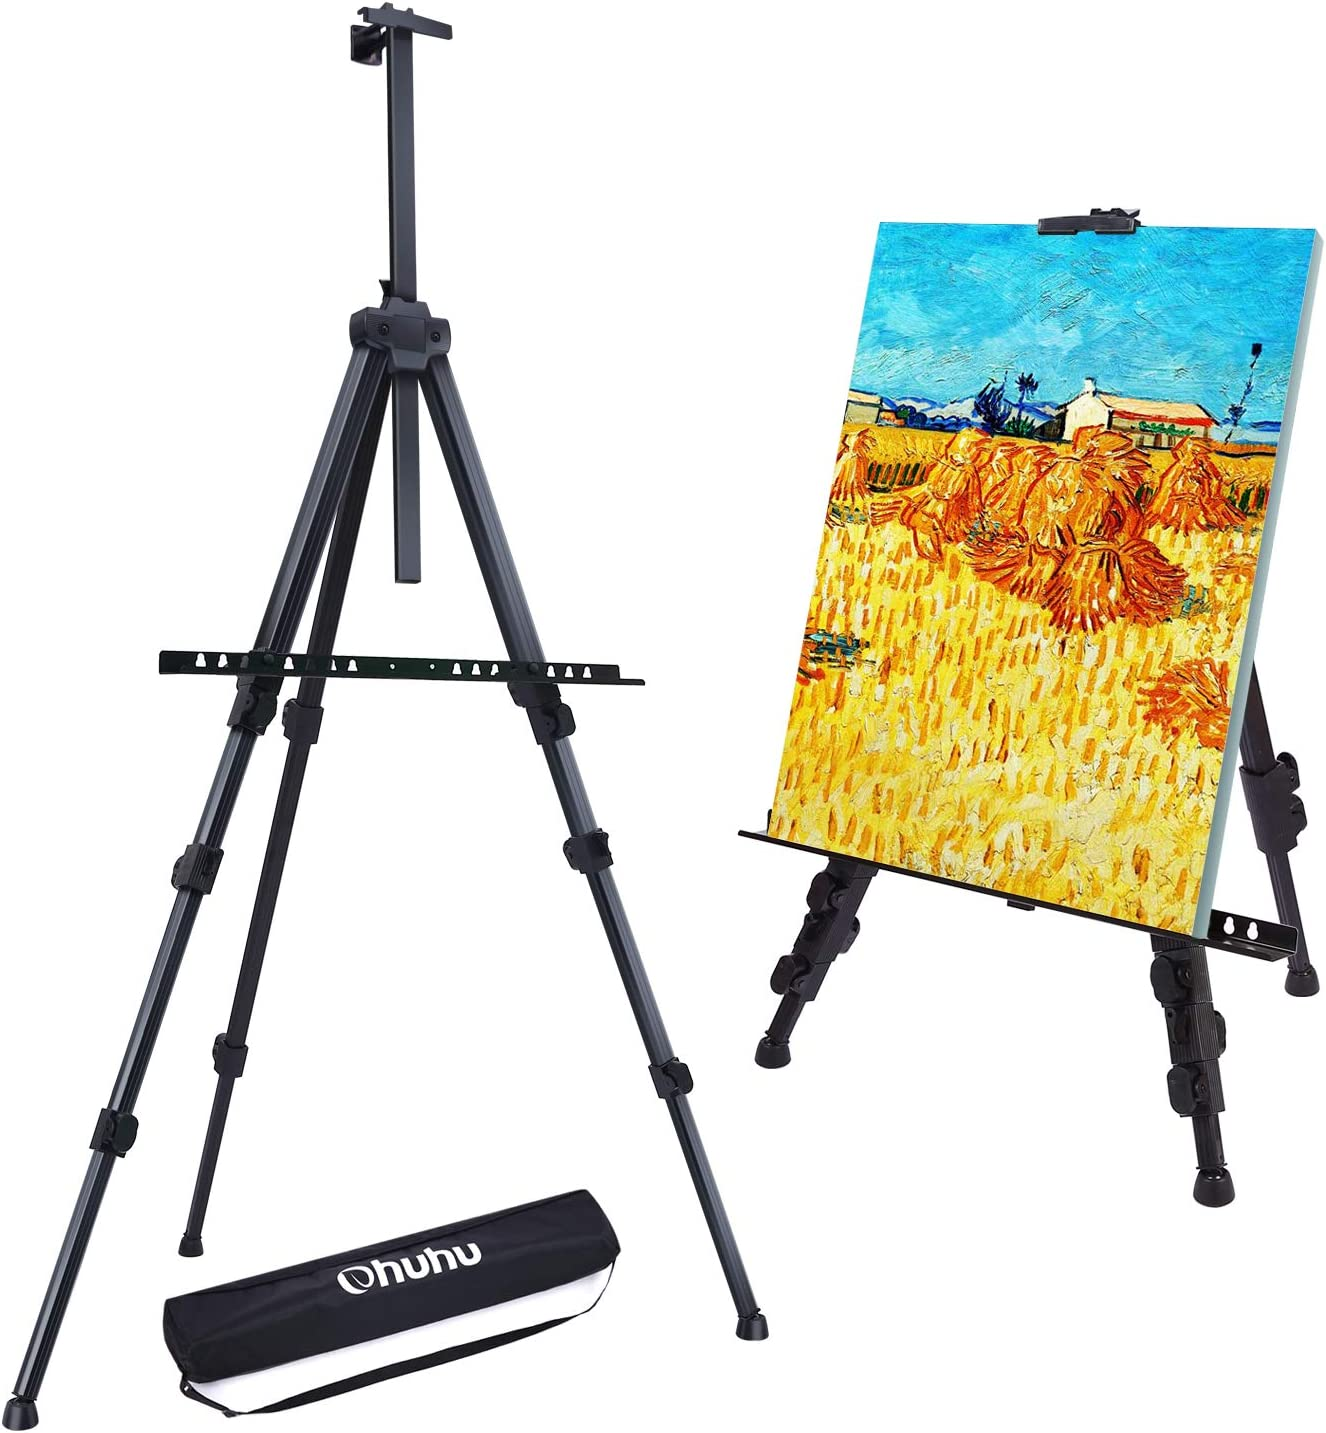 Display Easel Stand Ohuhu Height 25 72 Aluminum Metal Tripod Field Art Easels For Table Top Floor Adjustable For Poster Displaying Drawing And Kids Painting Easel Gift For Mother S Day Amazon Ca Home Kitchen